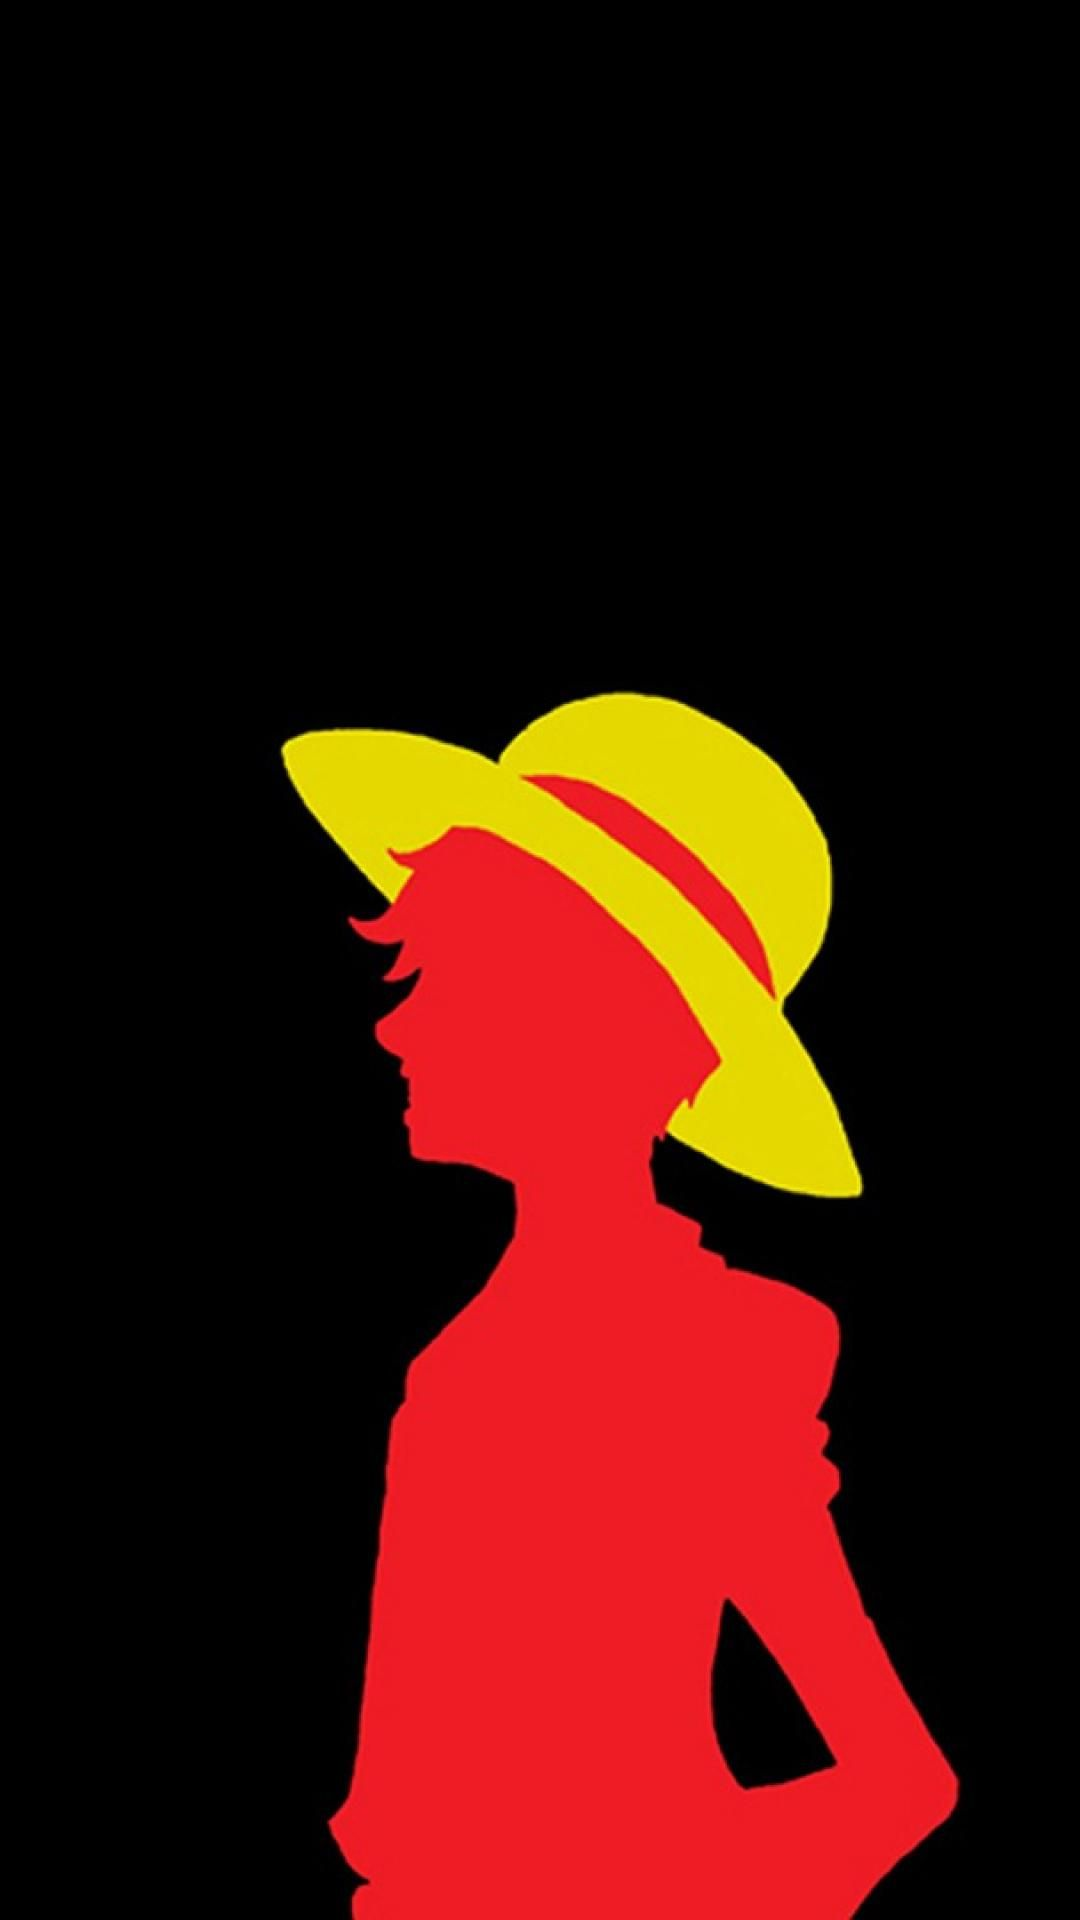 Download Free One Piece Iphone Wallpaper.